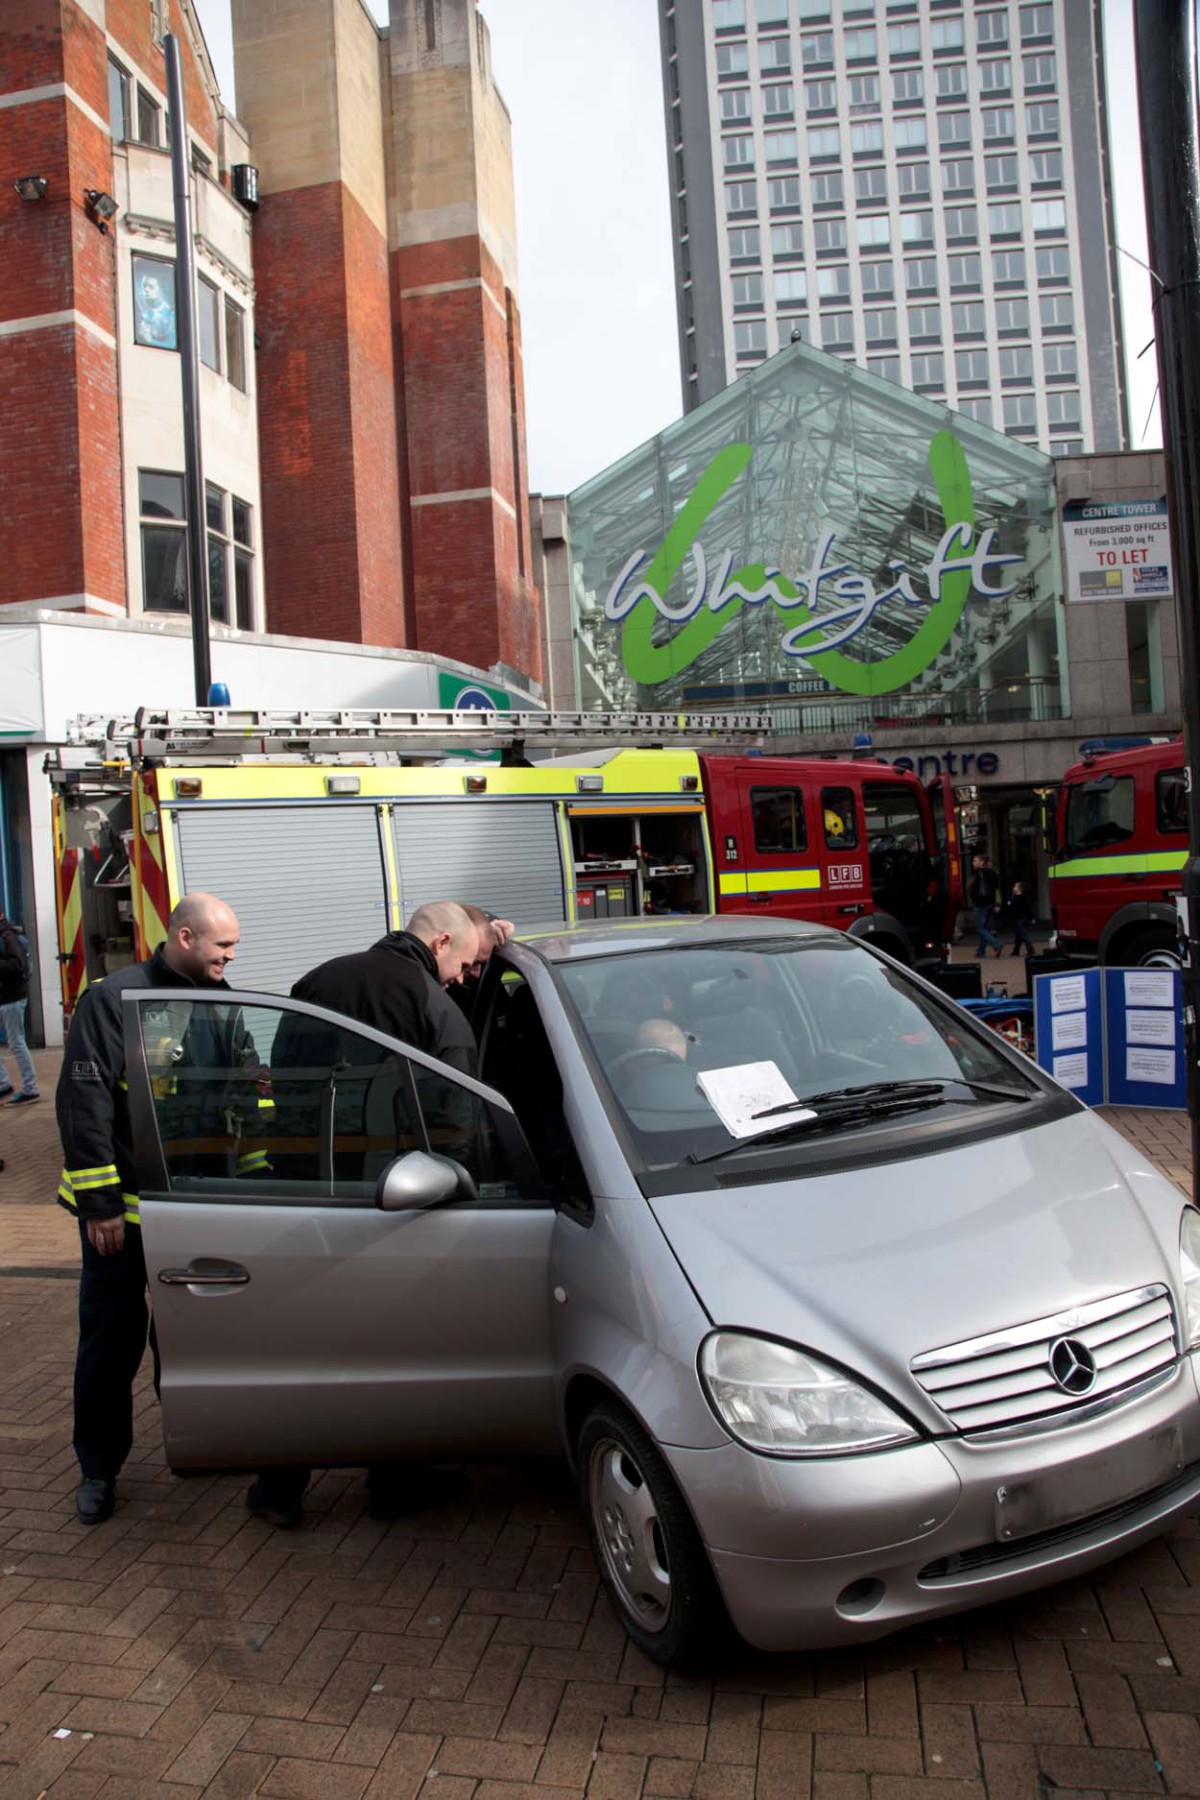 Firefighters showcase rescue skills in Croydon